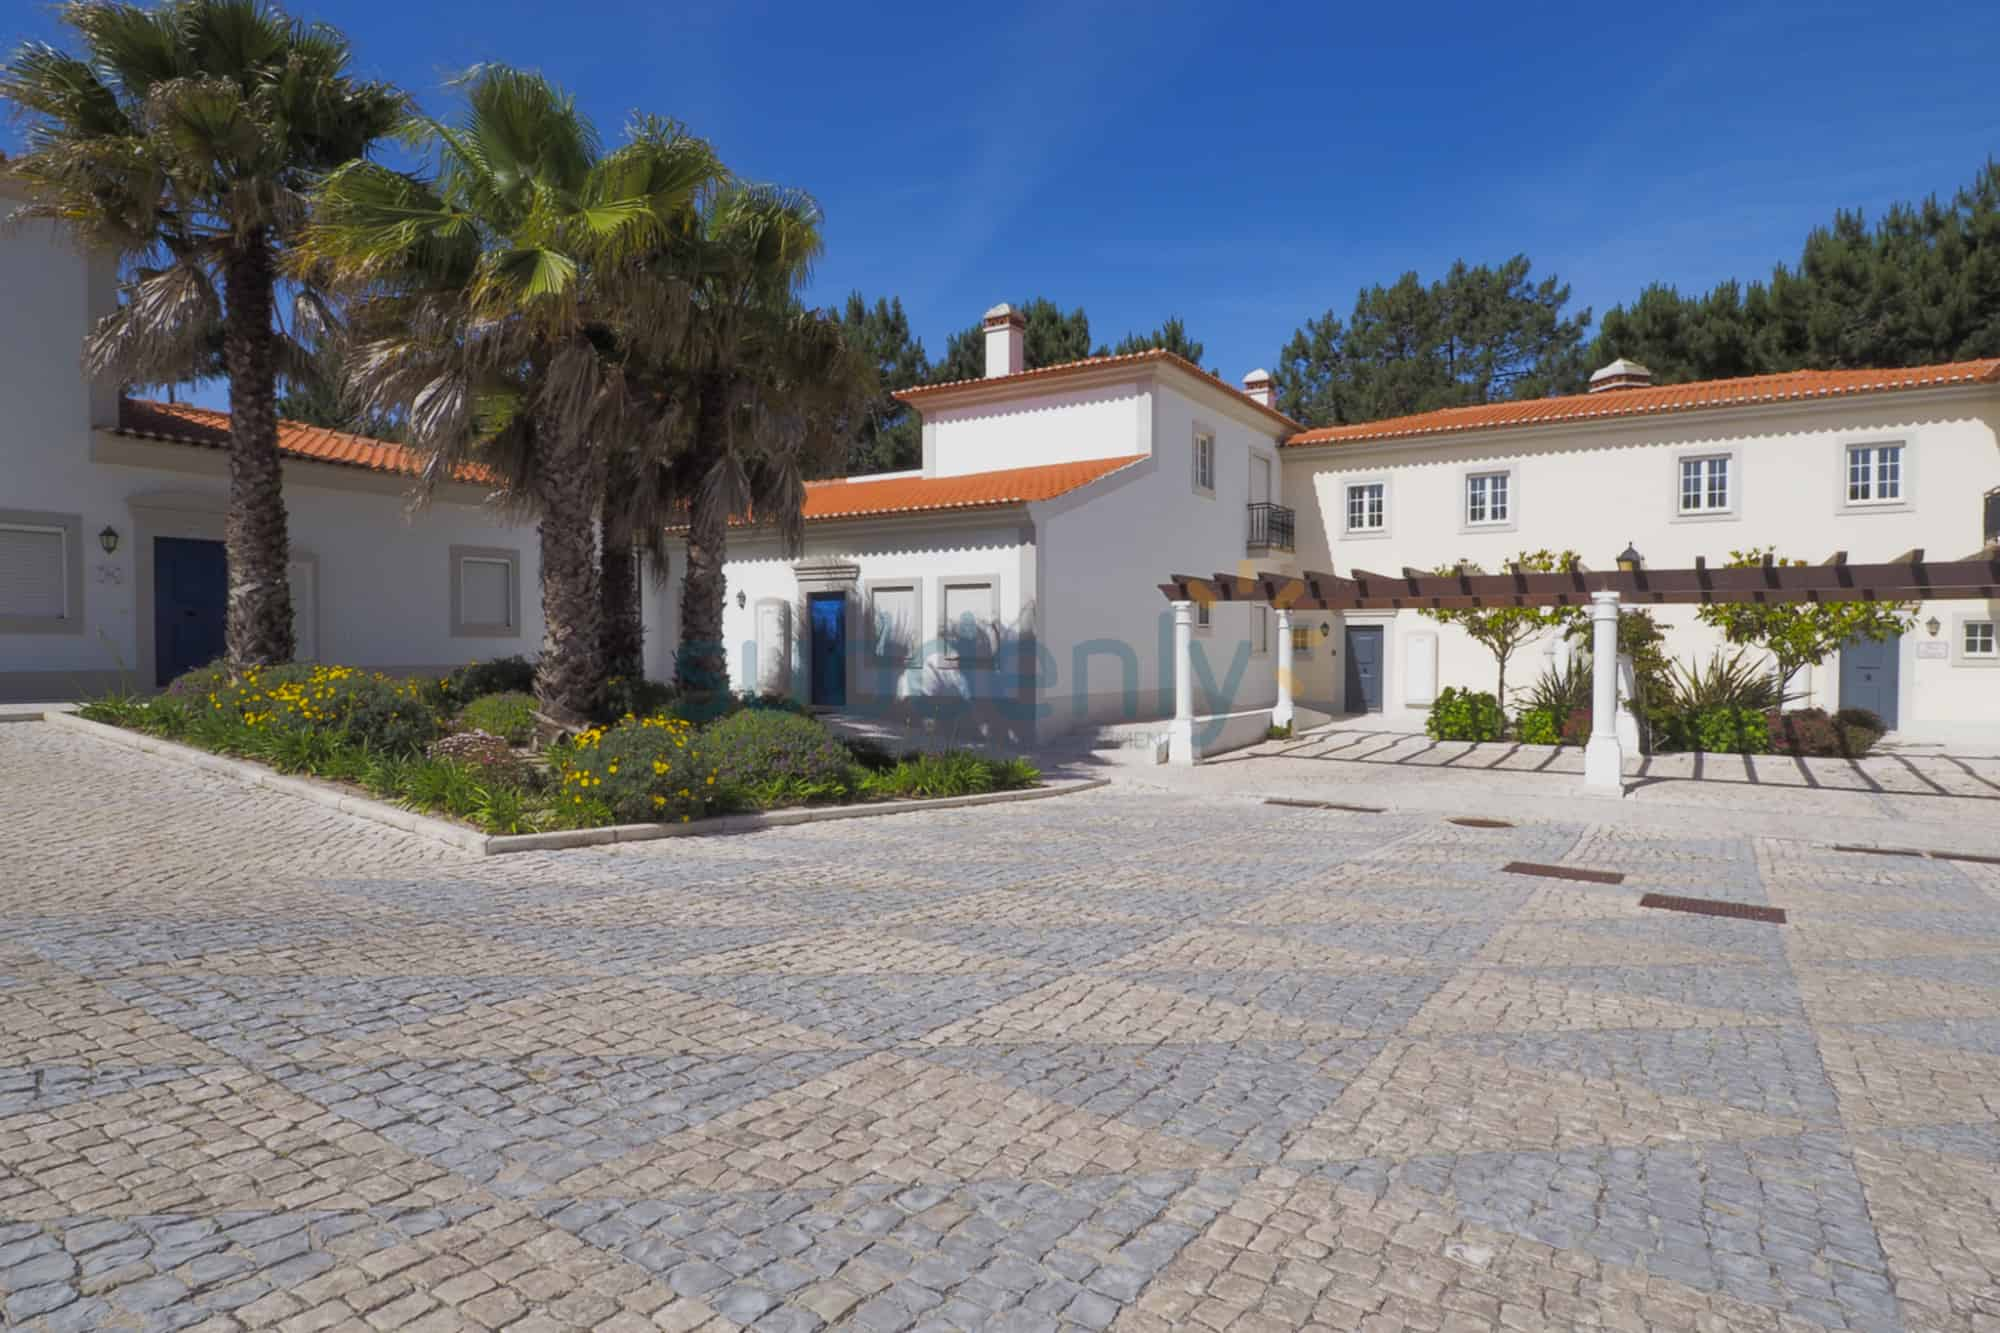 Holiday Rentals in Praia D'El Rey 46